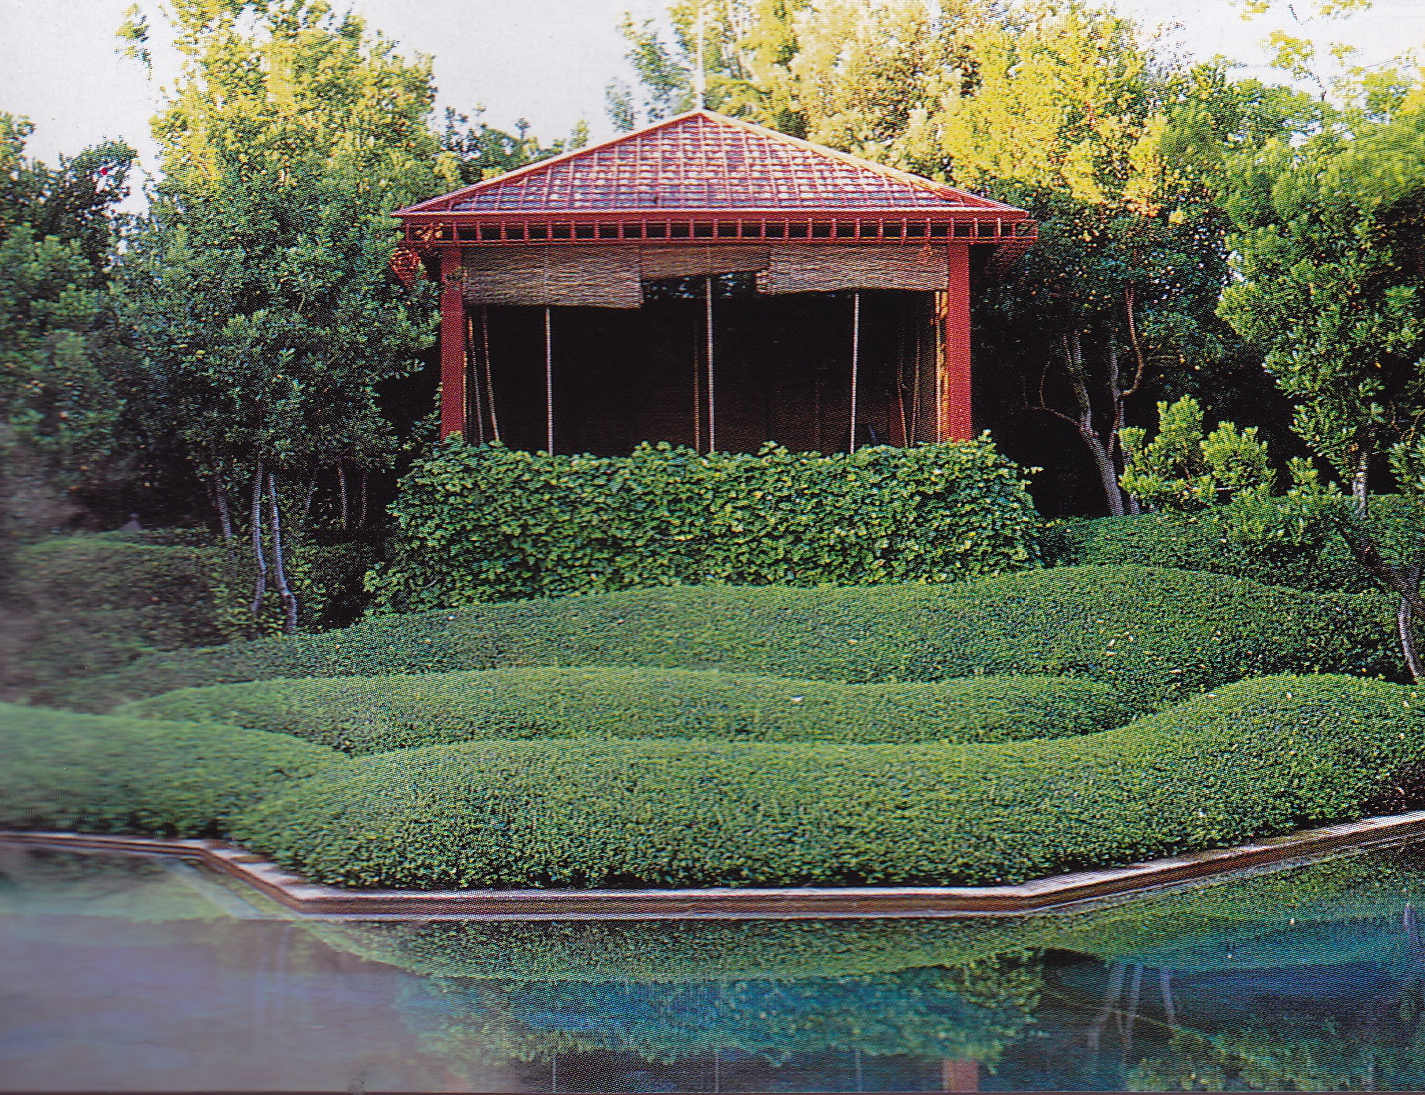 fernando caruncho - Kiosk behind the pool in Fernando Caruncho's home garden - telegraph.co.uk via atticmag